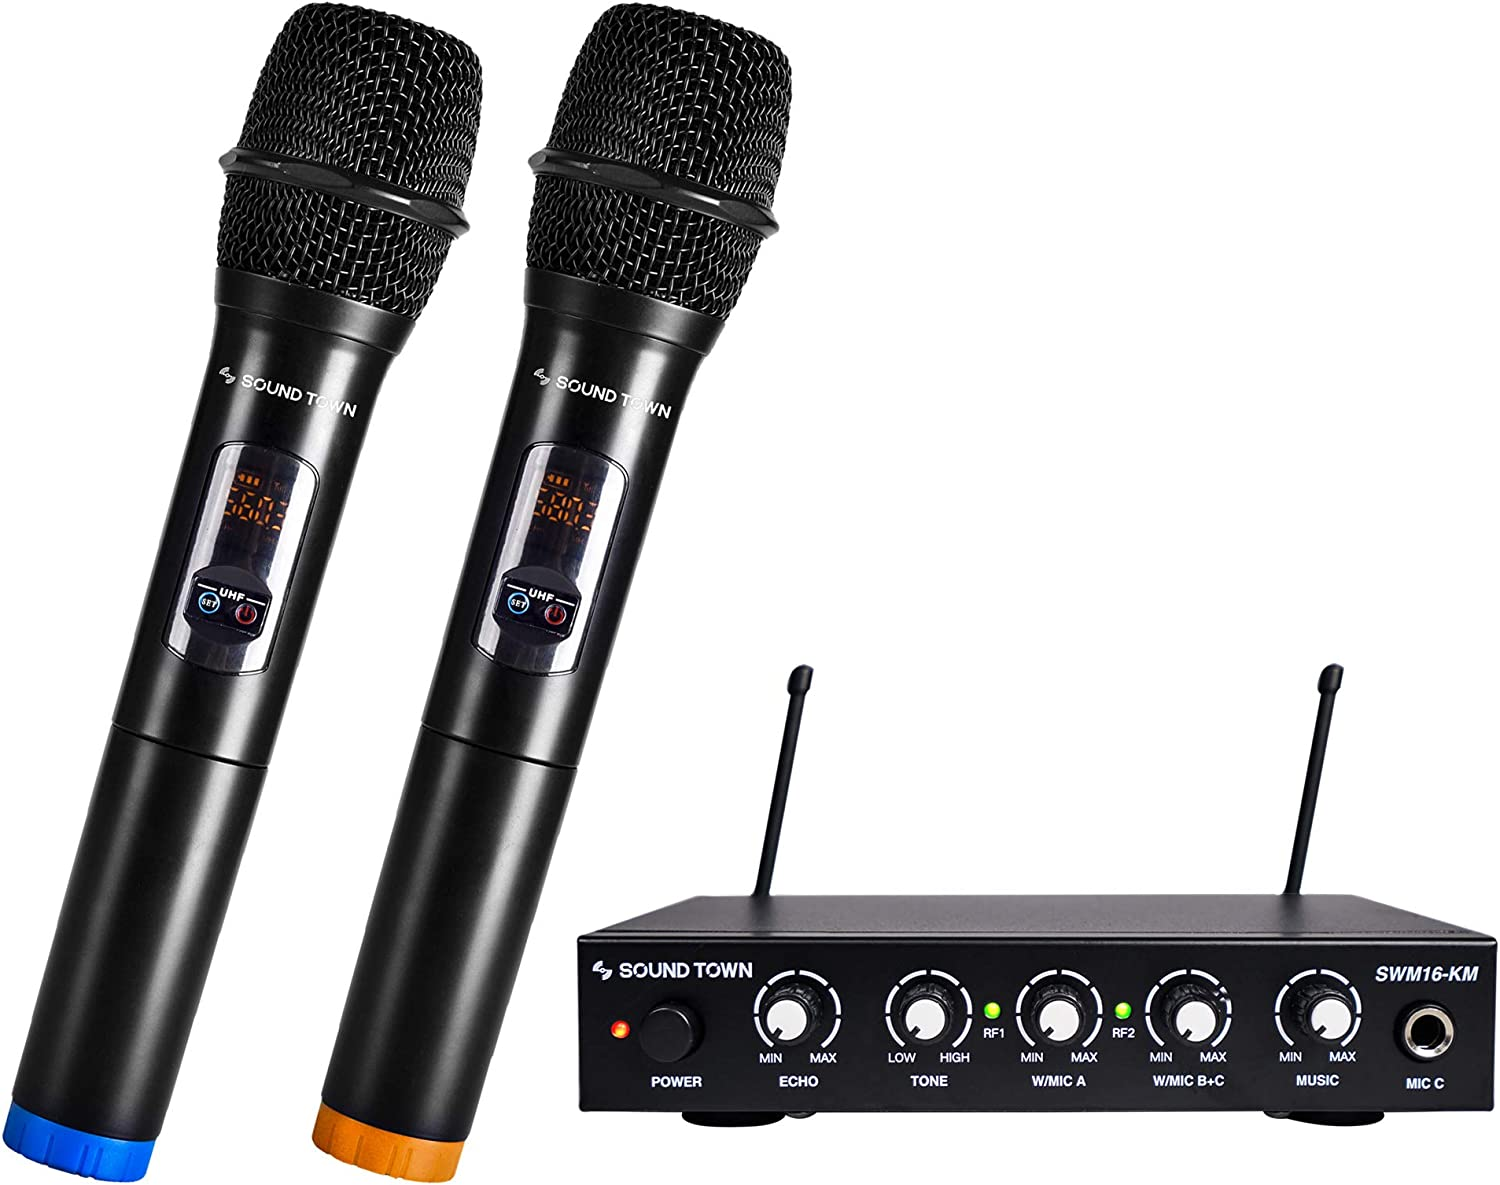 Sound Town UHF 16 Channels Karaoke Wireless Microphone System with Metal Mixer, 2 Handheld Microphones, for Church, School, Wedding, Meeting, Karaoke (SWM16-KM)